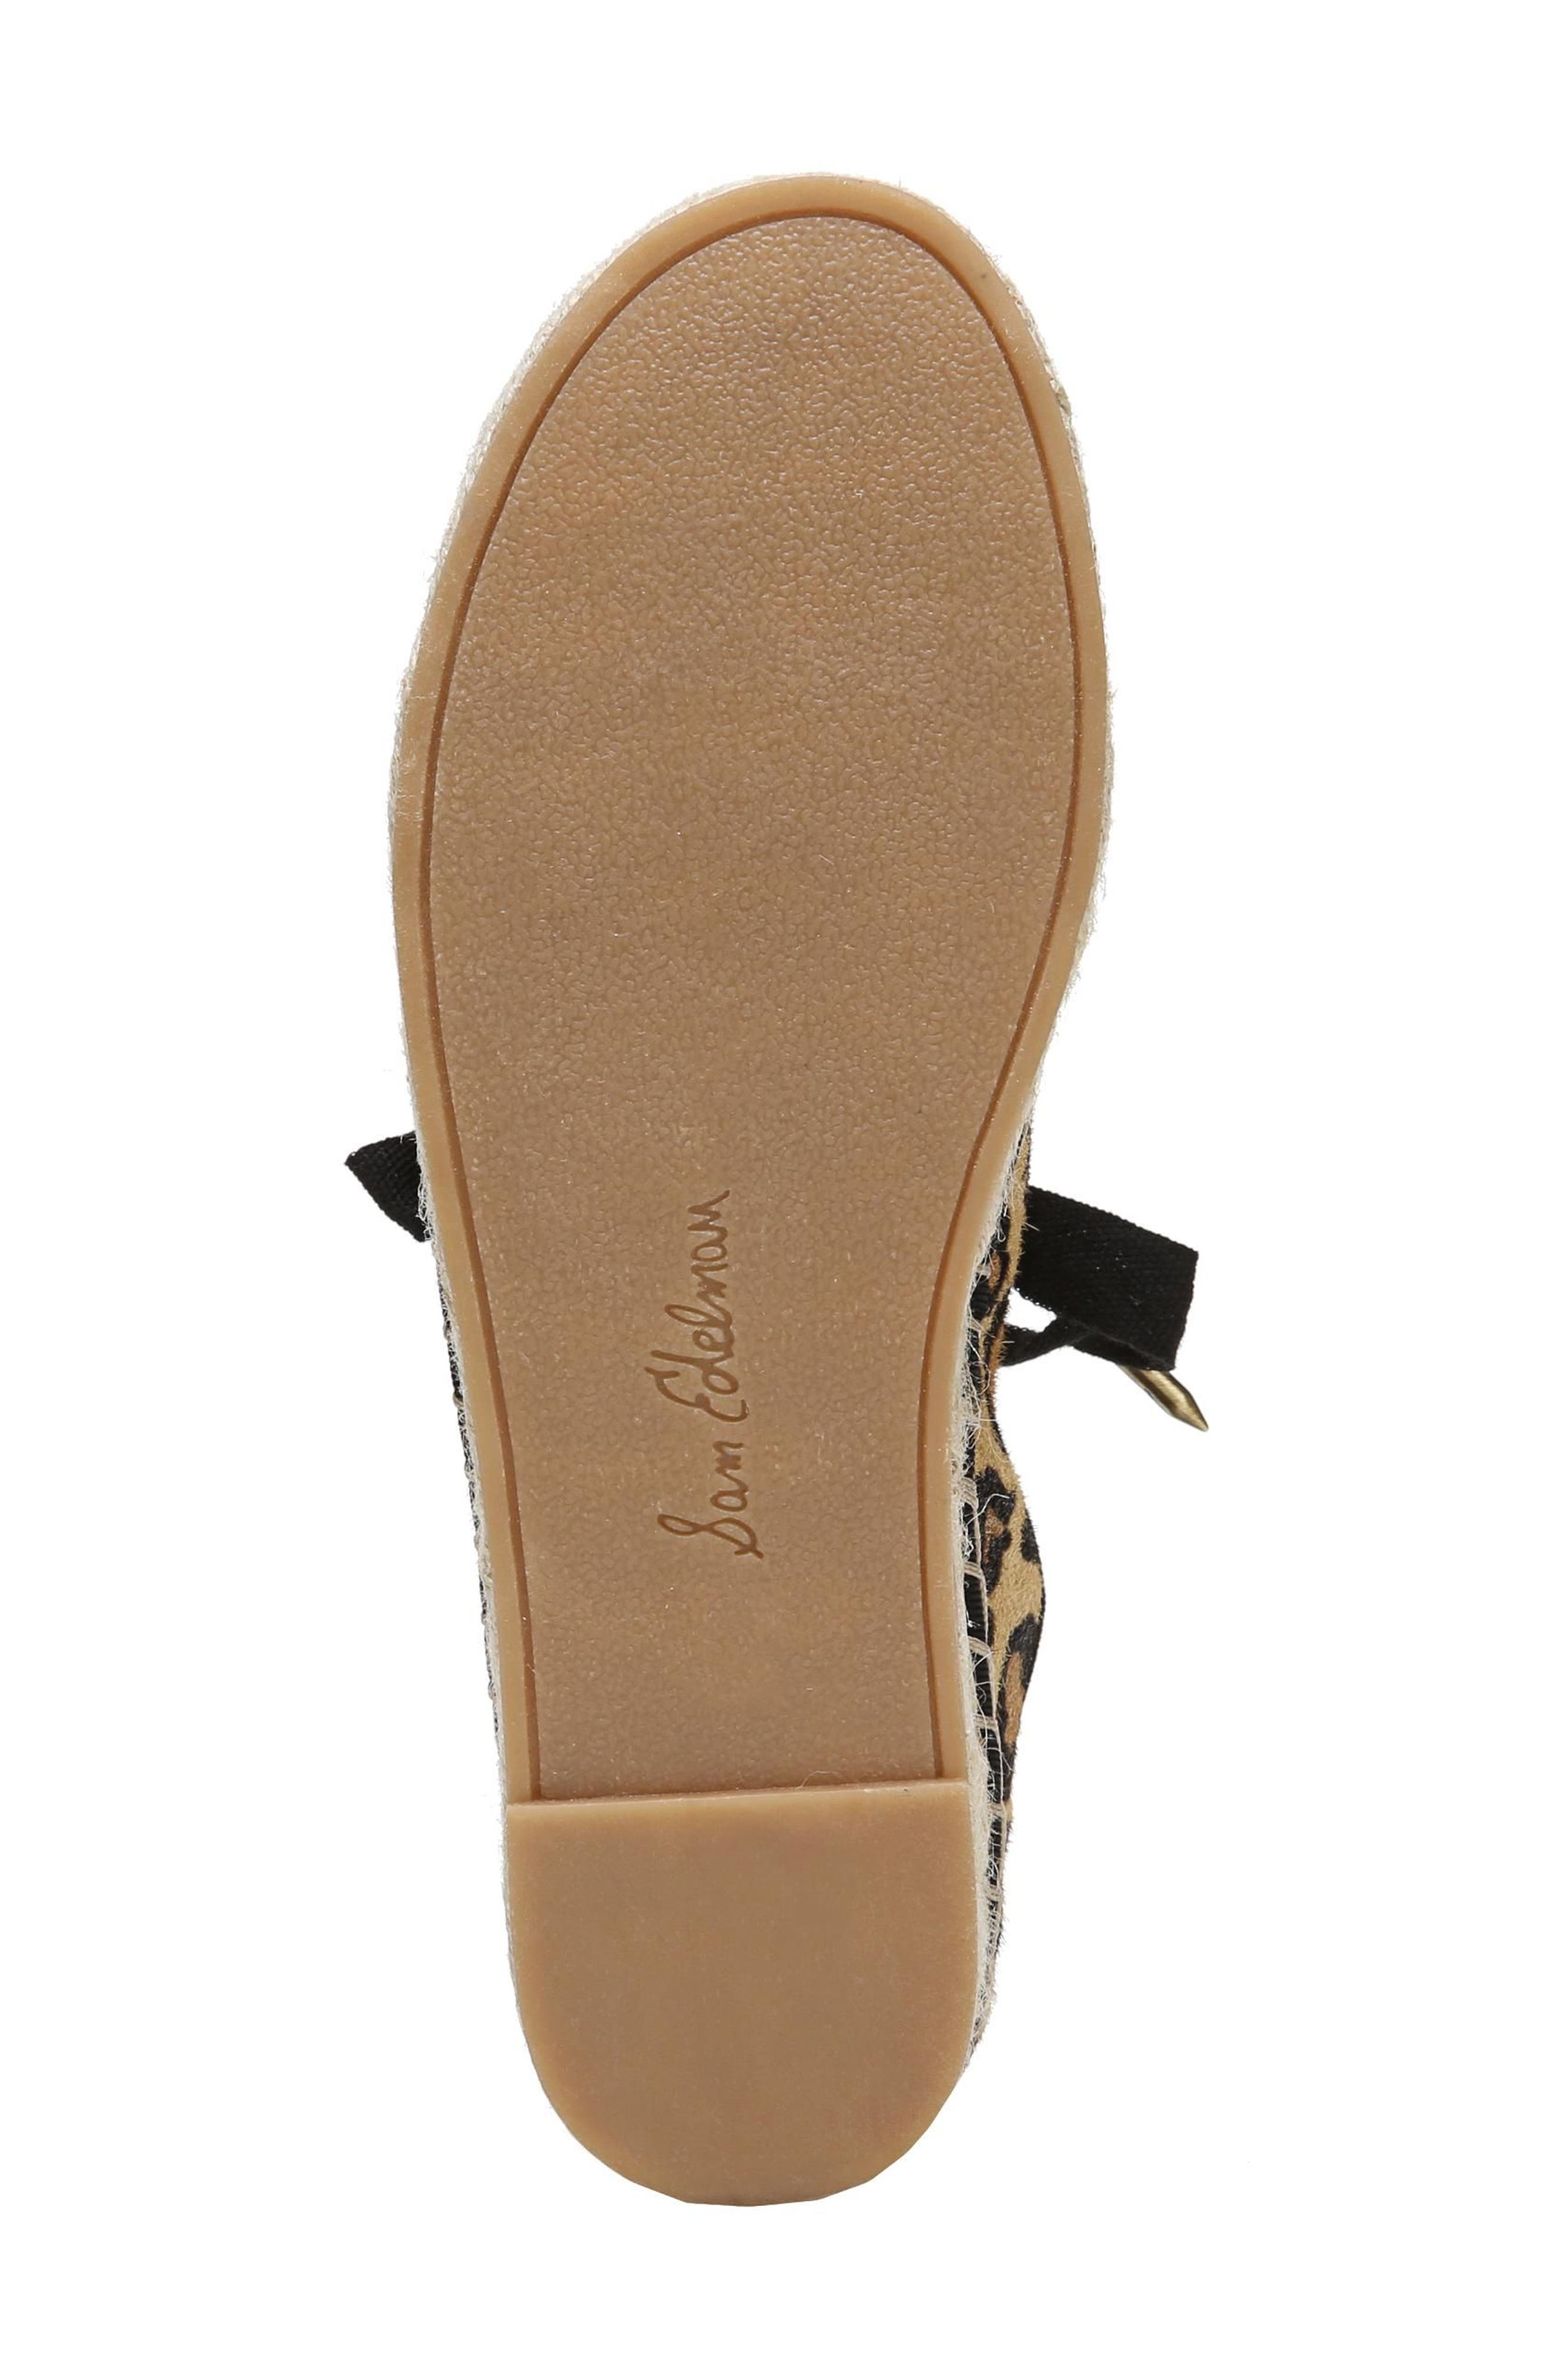 Celina Genuine Calf Hair Espadrille Flat,                             Alternate thumbnail 6, color,                             200